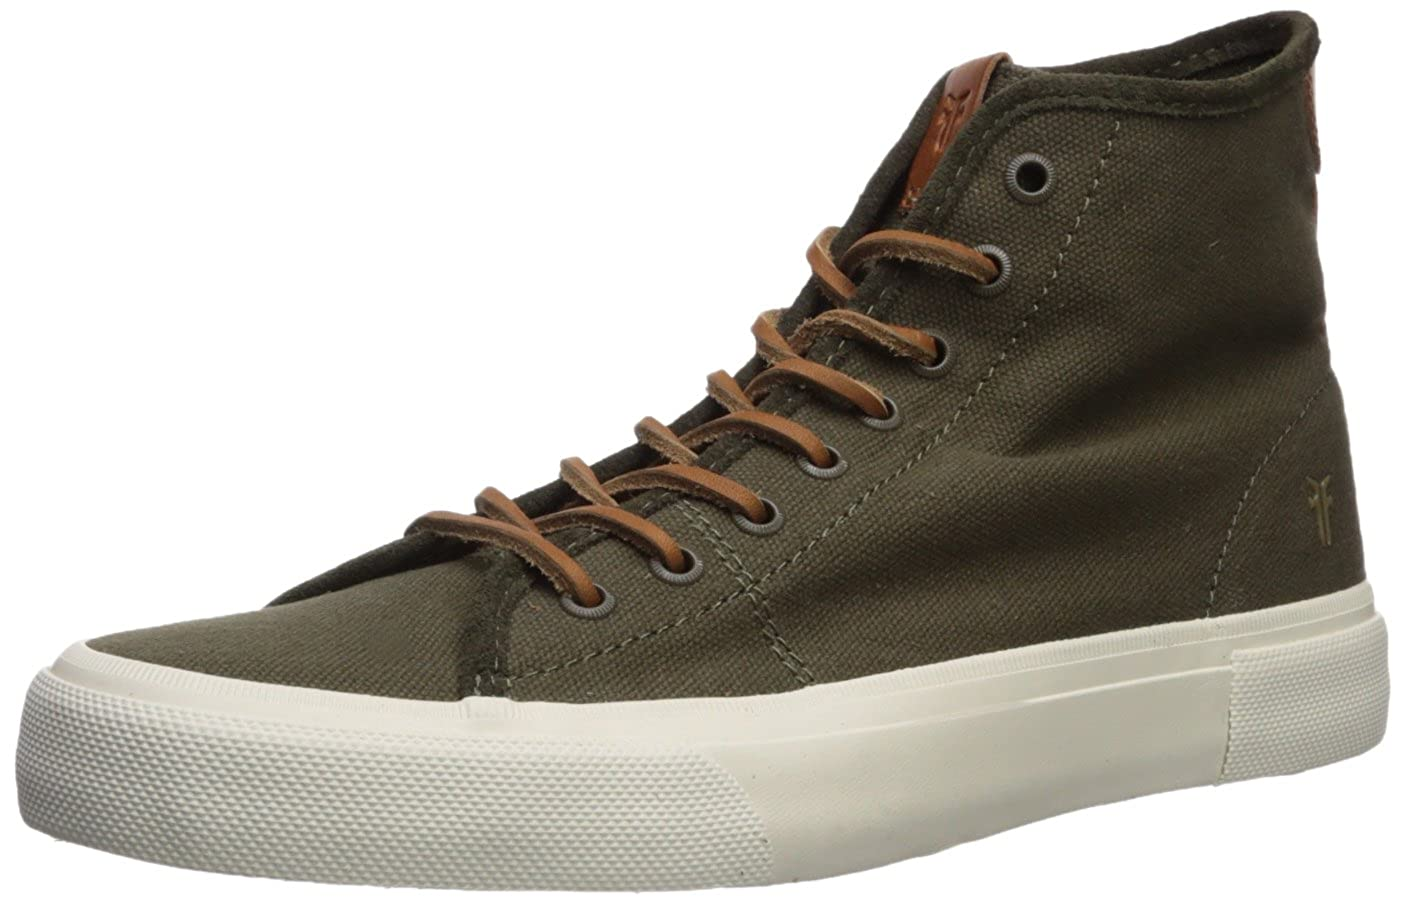 Vert Olive 44 EU FRYE LudFaible High - Montantes Homme